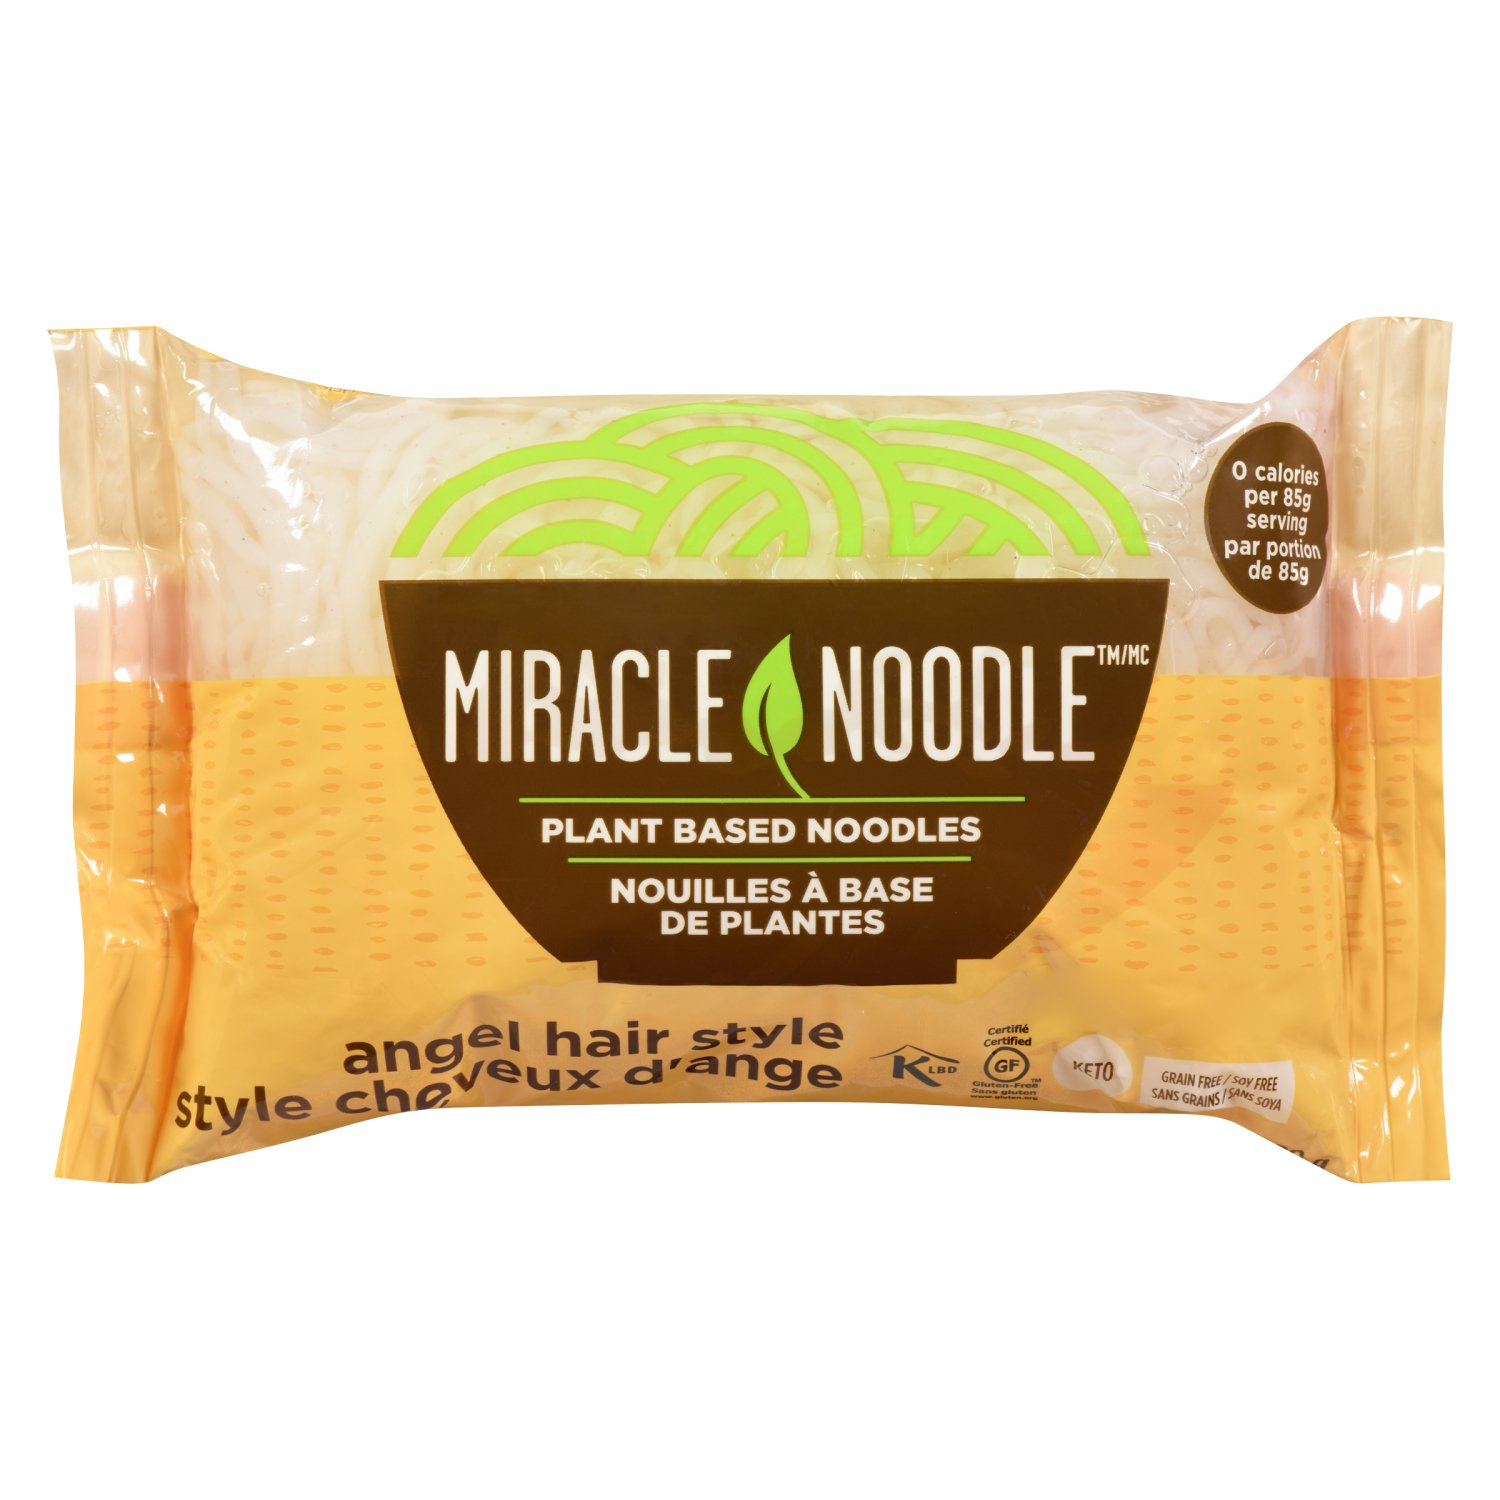 MIRACLE NOODLE: Buy low carb, low calorie, carb free Shirataki noodles, Shirataki Pasta, Konjac products, konjac noodles and glucomannan from Miracle Noodle.